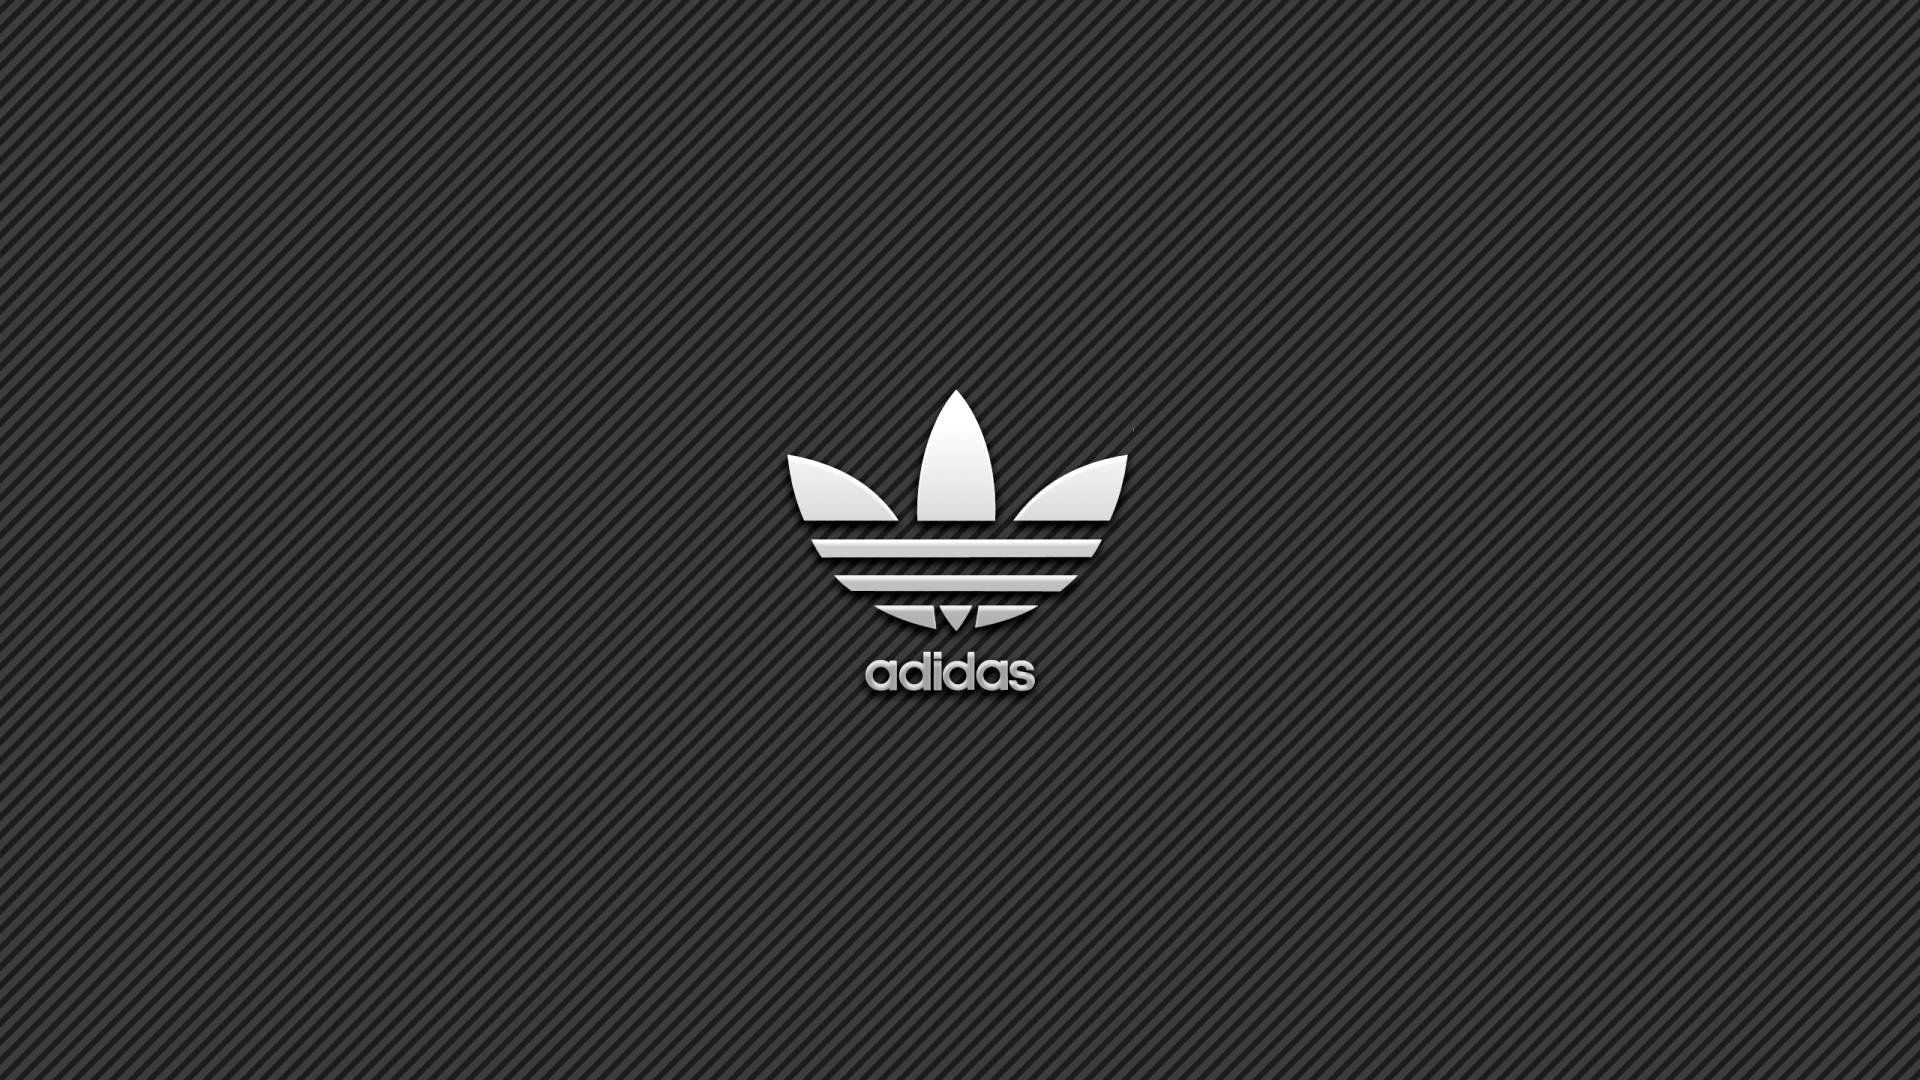 adidas logo hd wallpapers